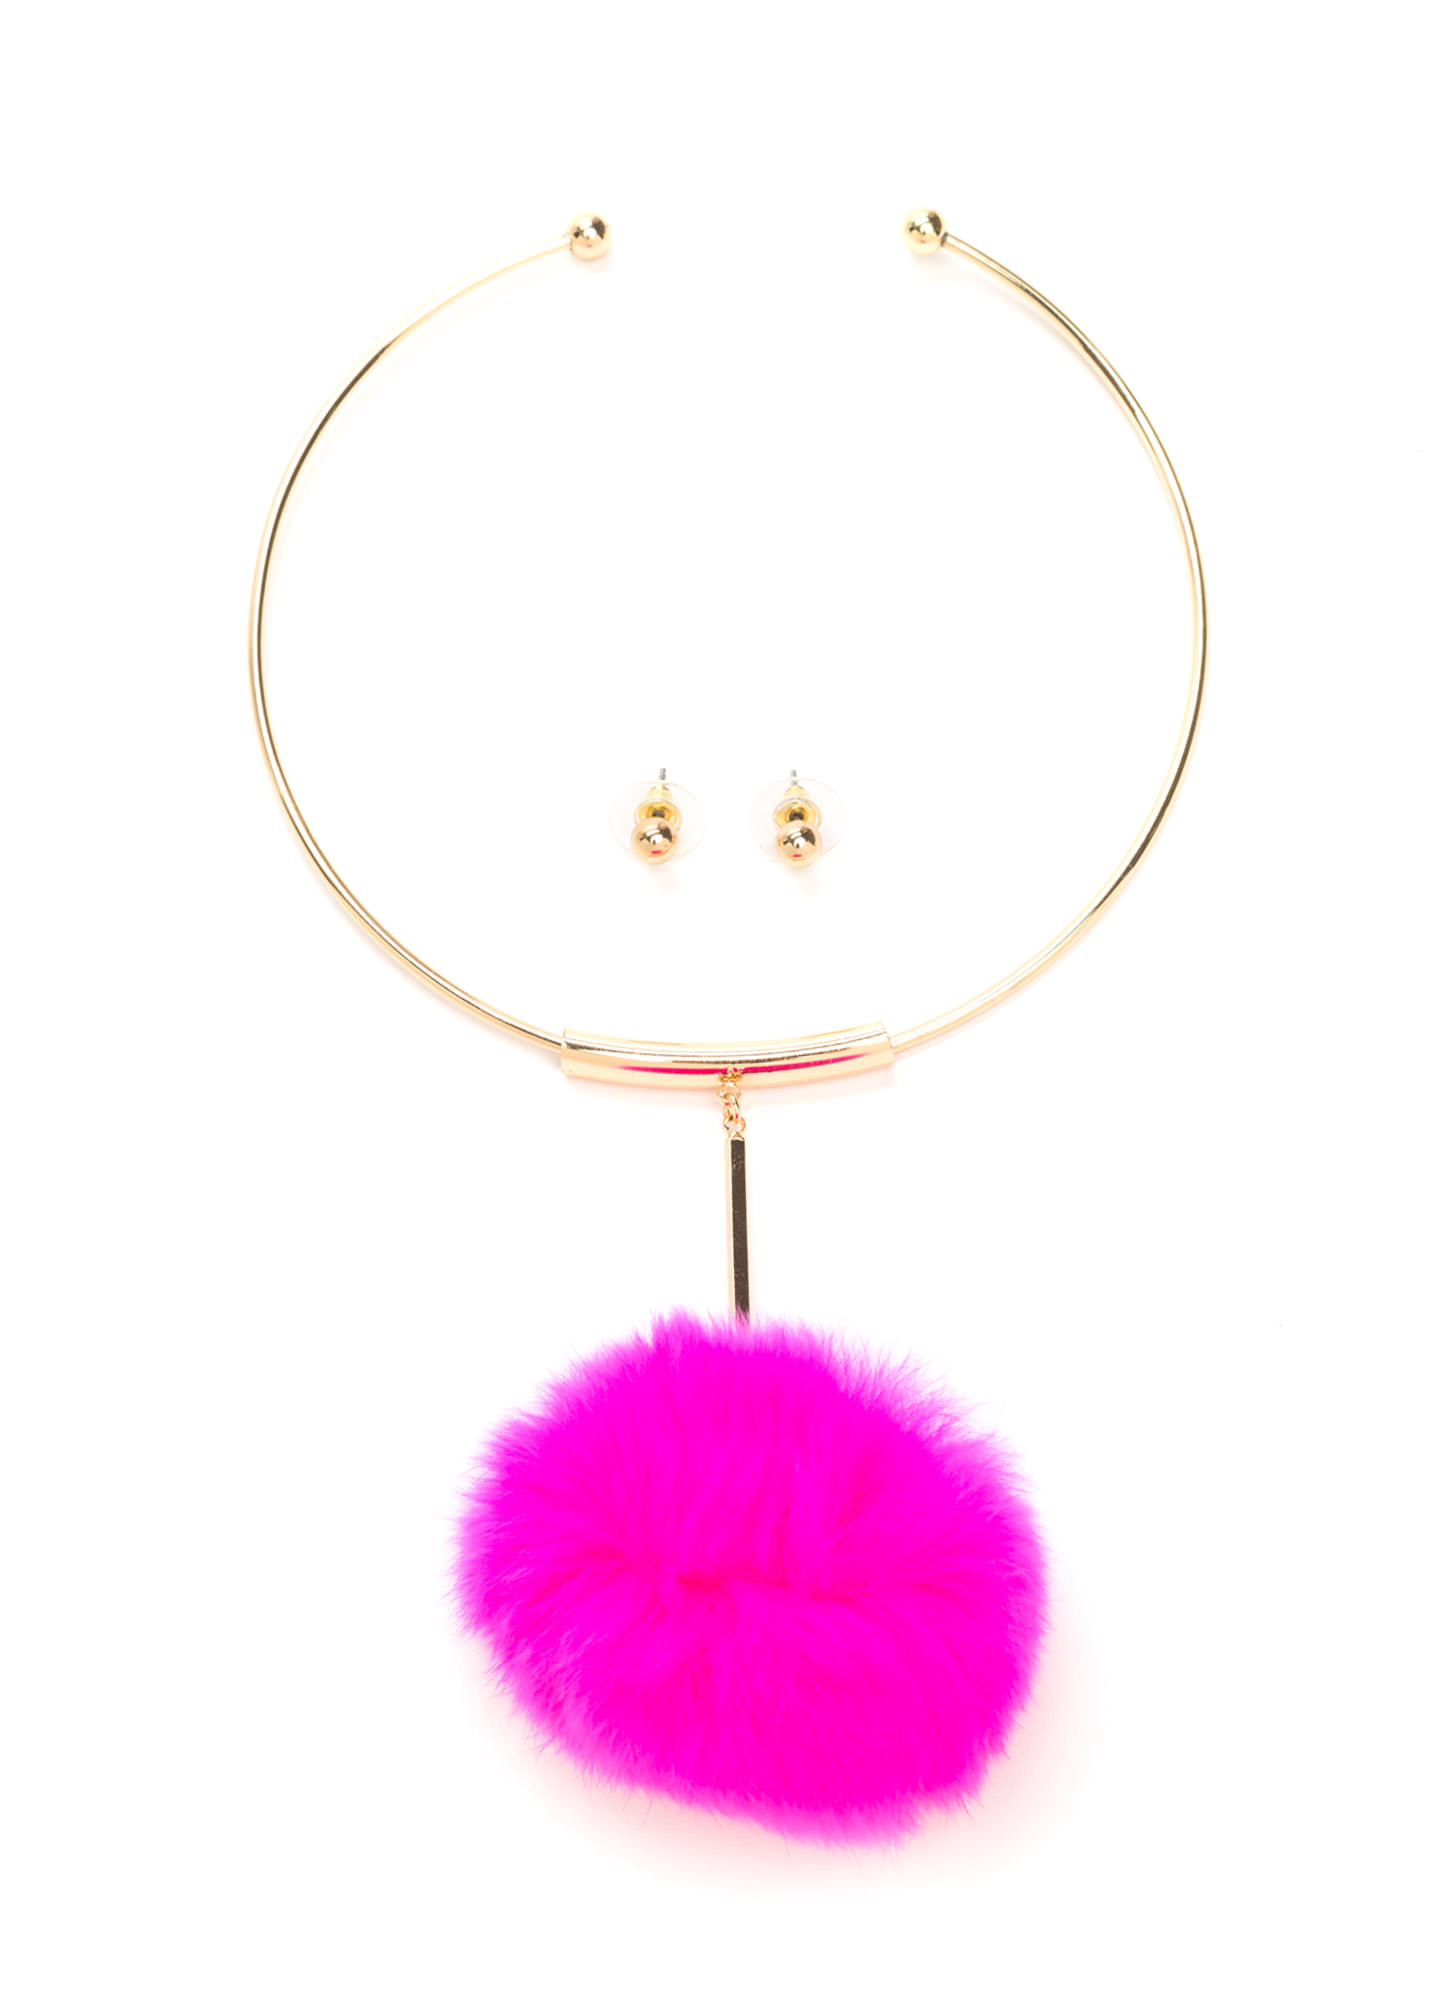 All Faux Fur It Pom-Pom Necklace Set PINK